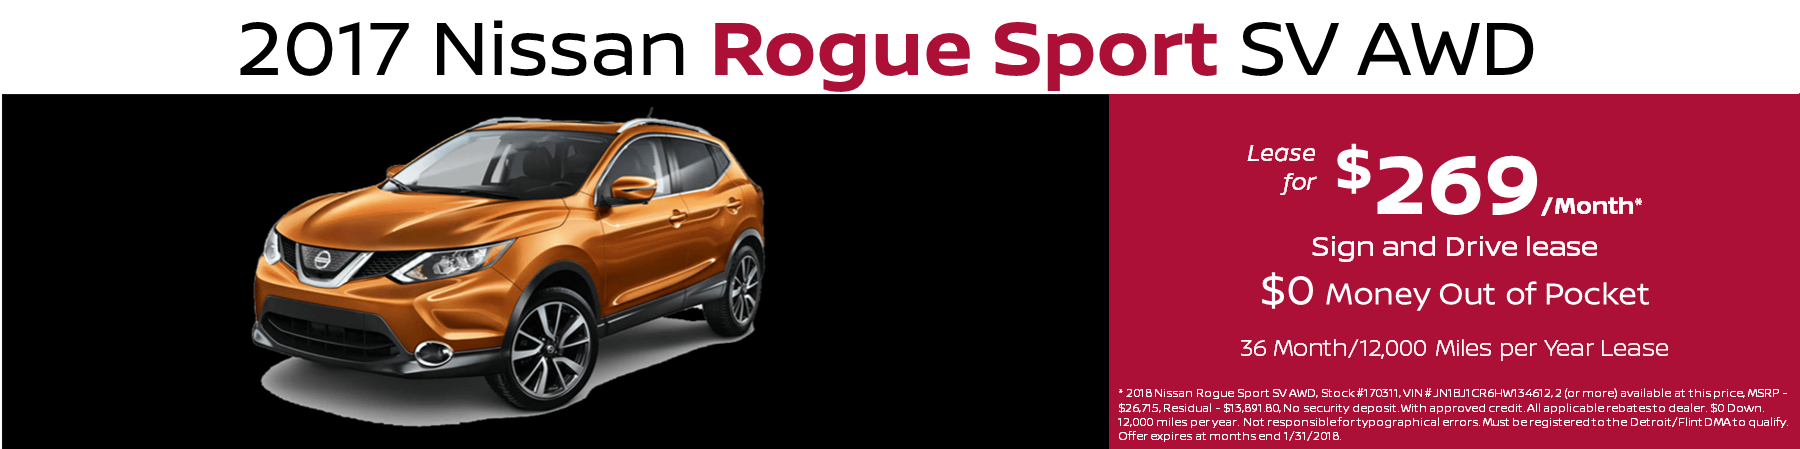 Nissan Rogue Sport Lease Special